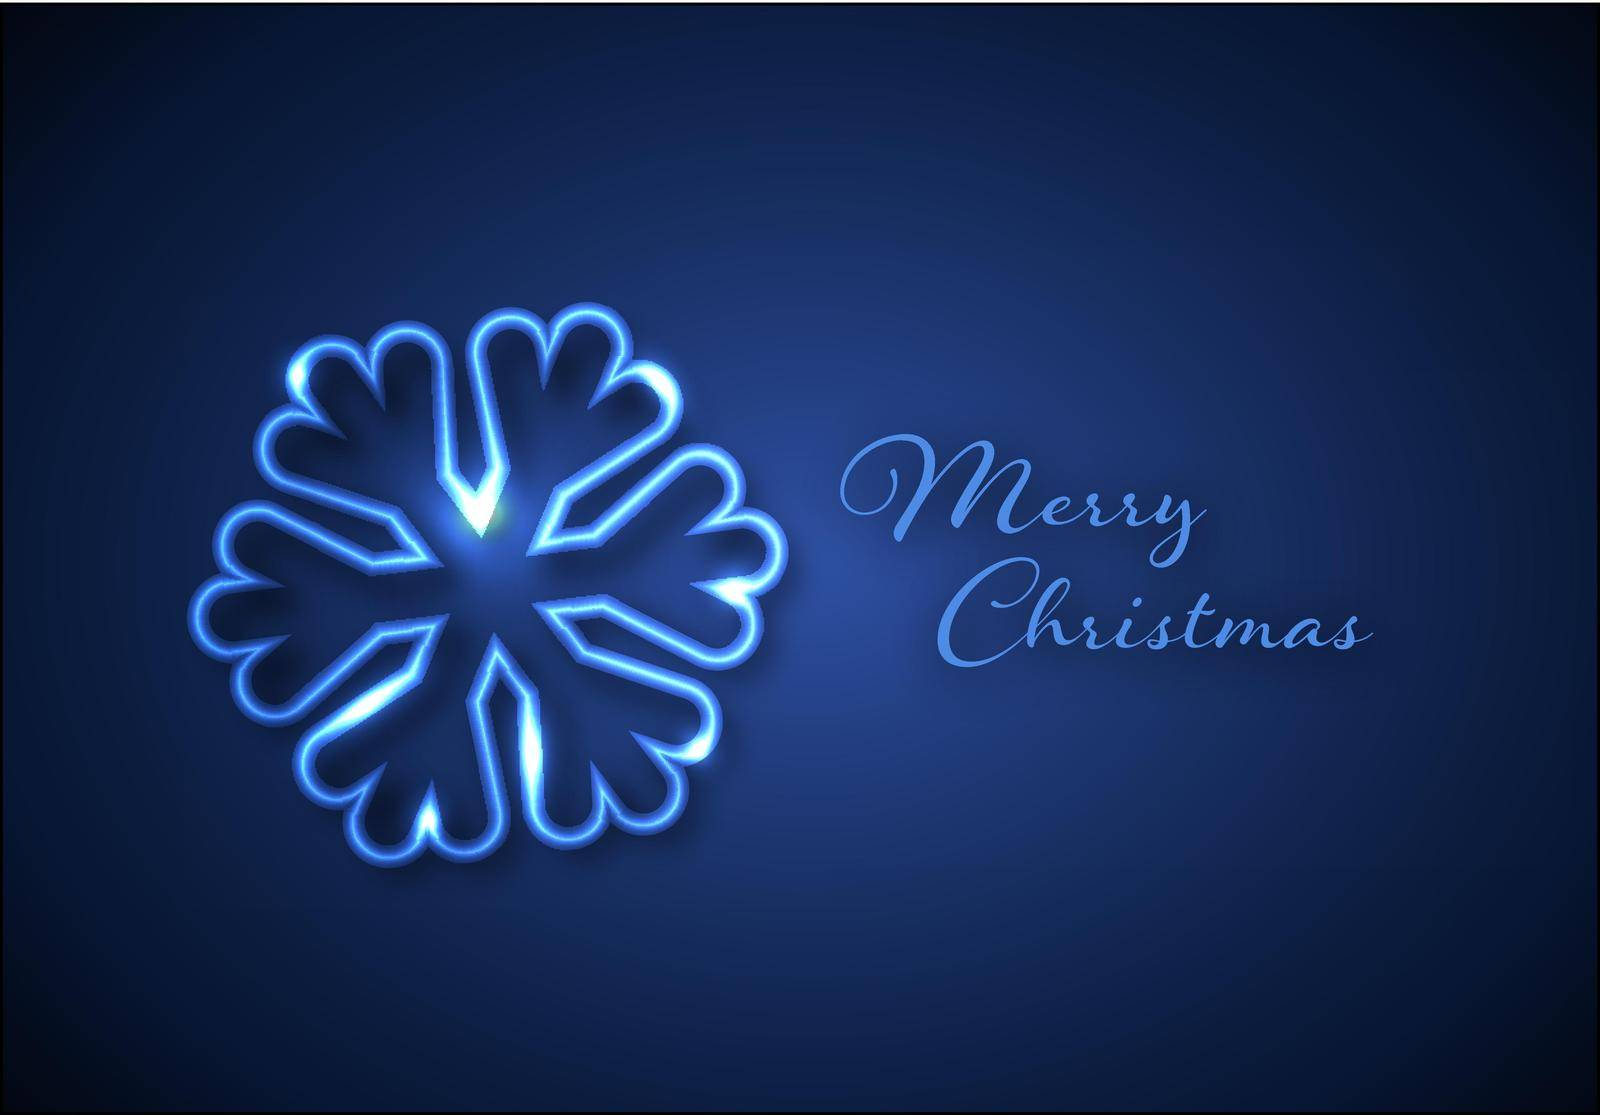 Christmas card with blue neon tube snow flake and some lights - blue version